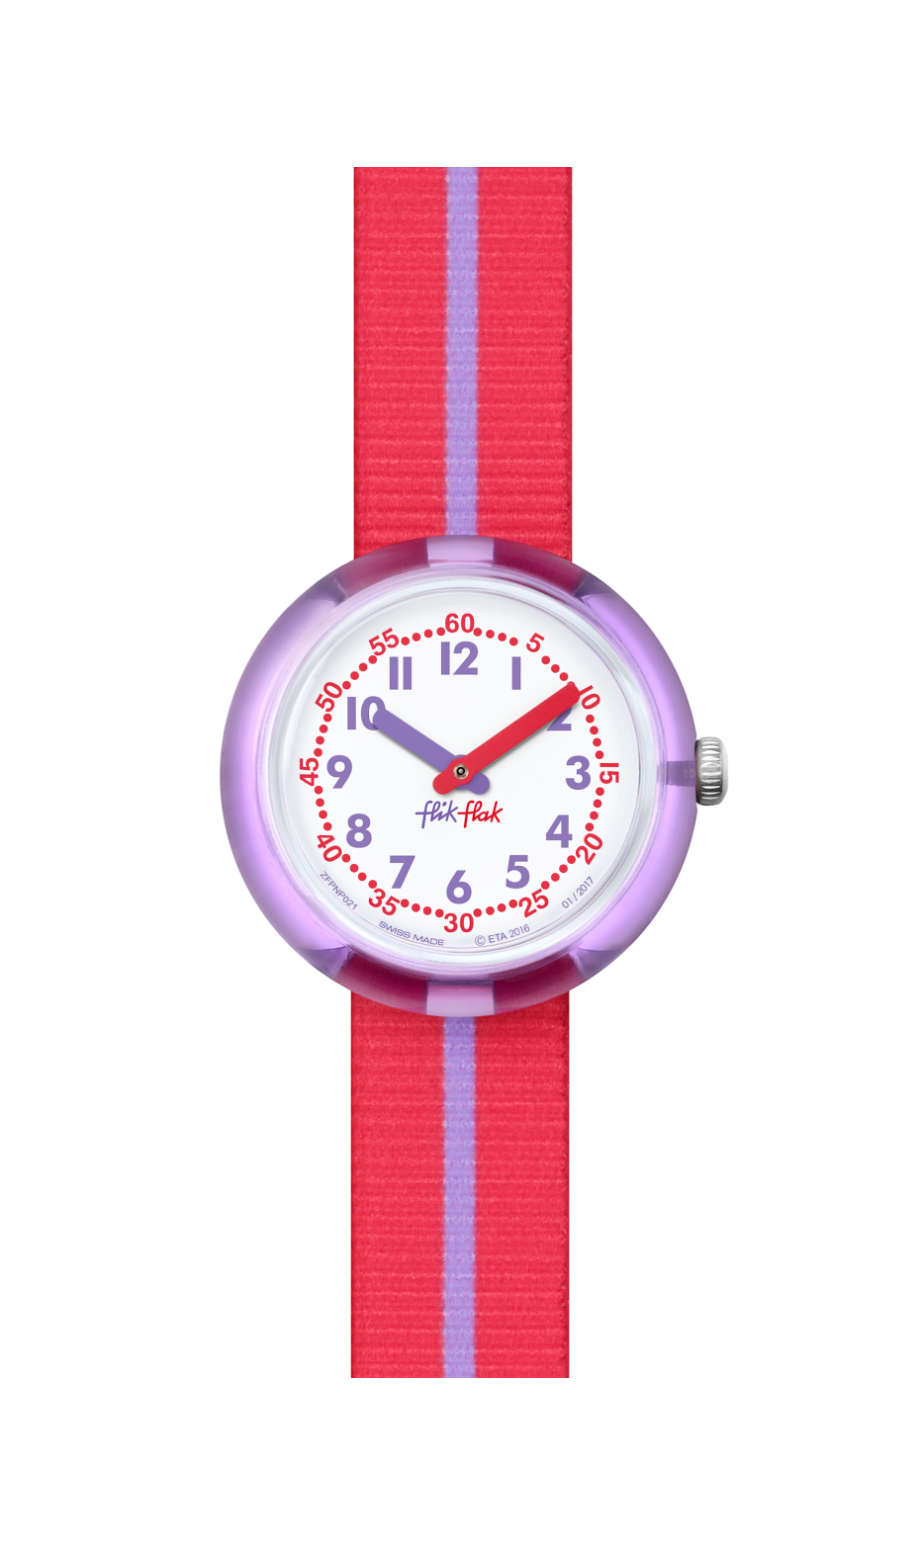 Swatch - PURPLE BAND - 1